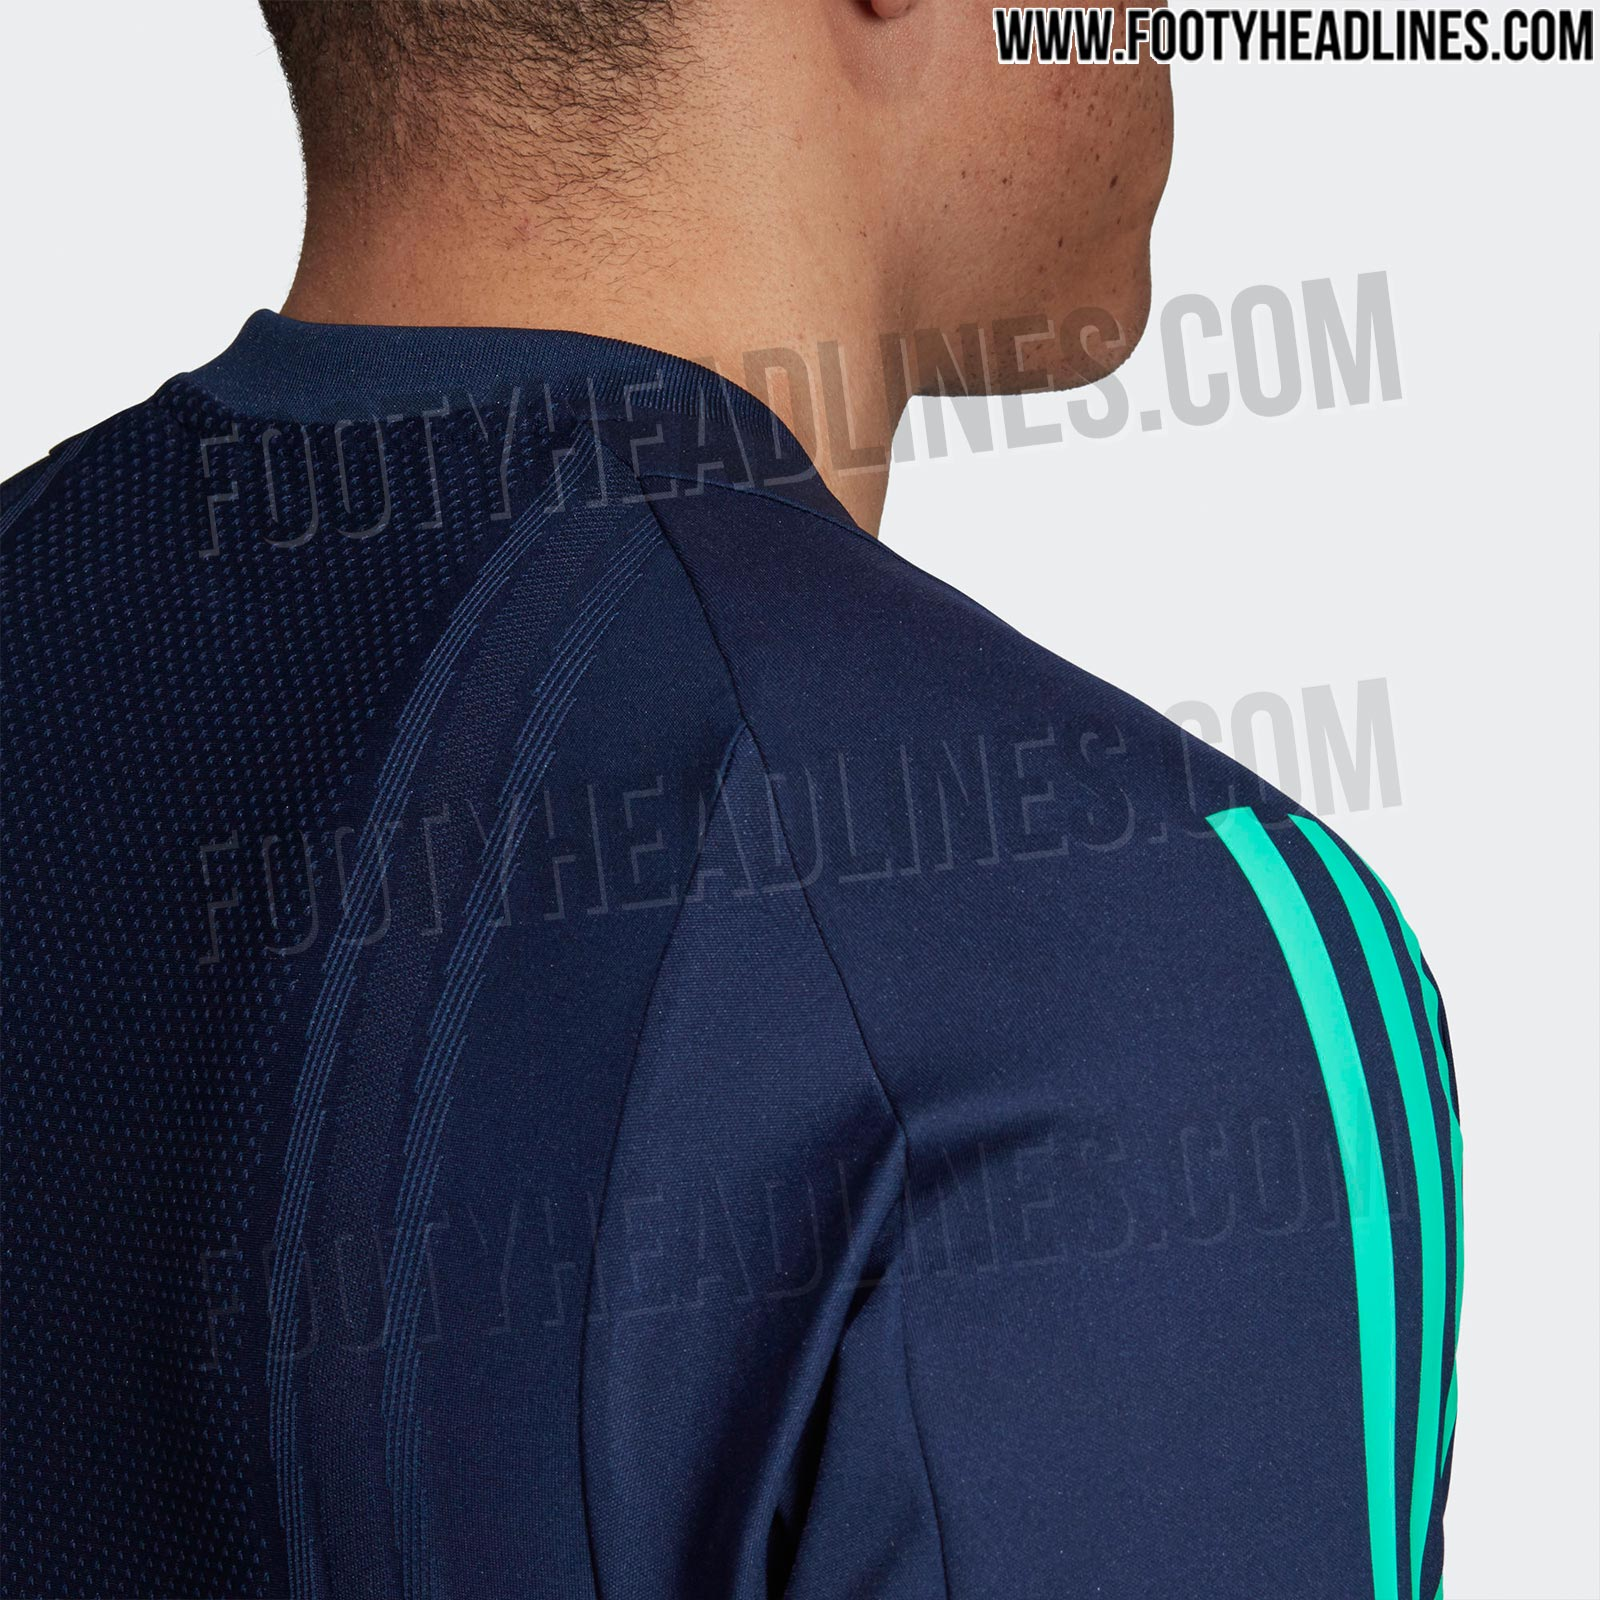 b1bb0f840ec ... away) shirt, the Adidas Real Madrid is navy and turquoise. In fact, it  are the inverted colors of the Real Madrid 2019-20 third kit, just without  white.